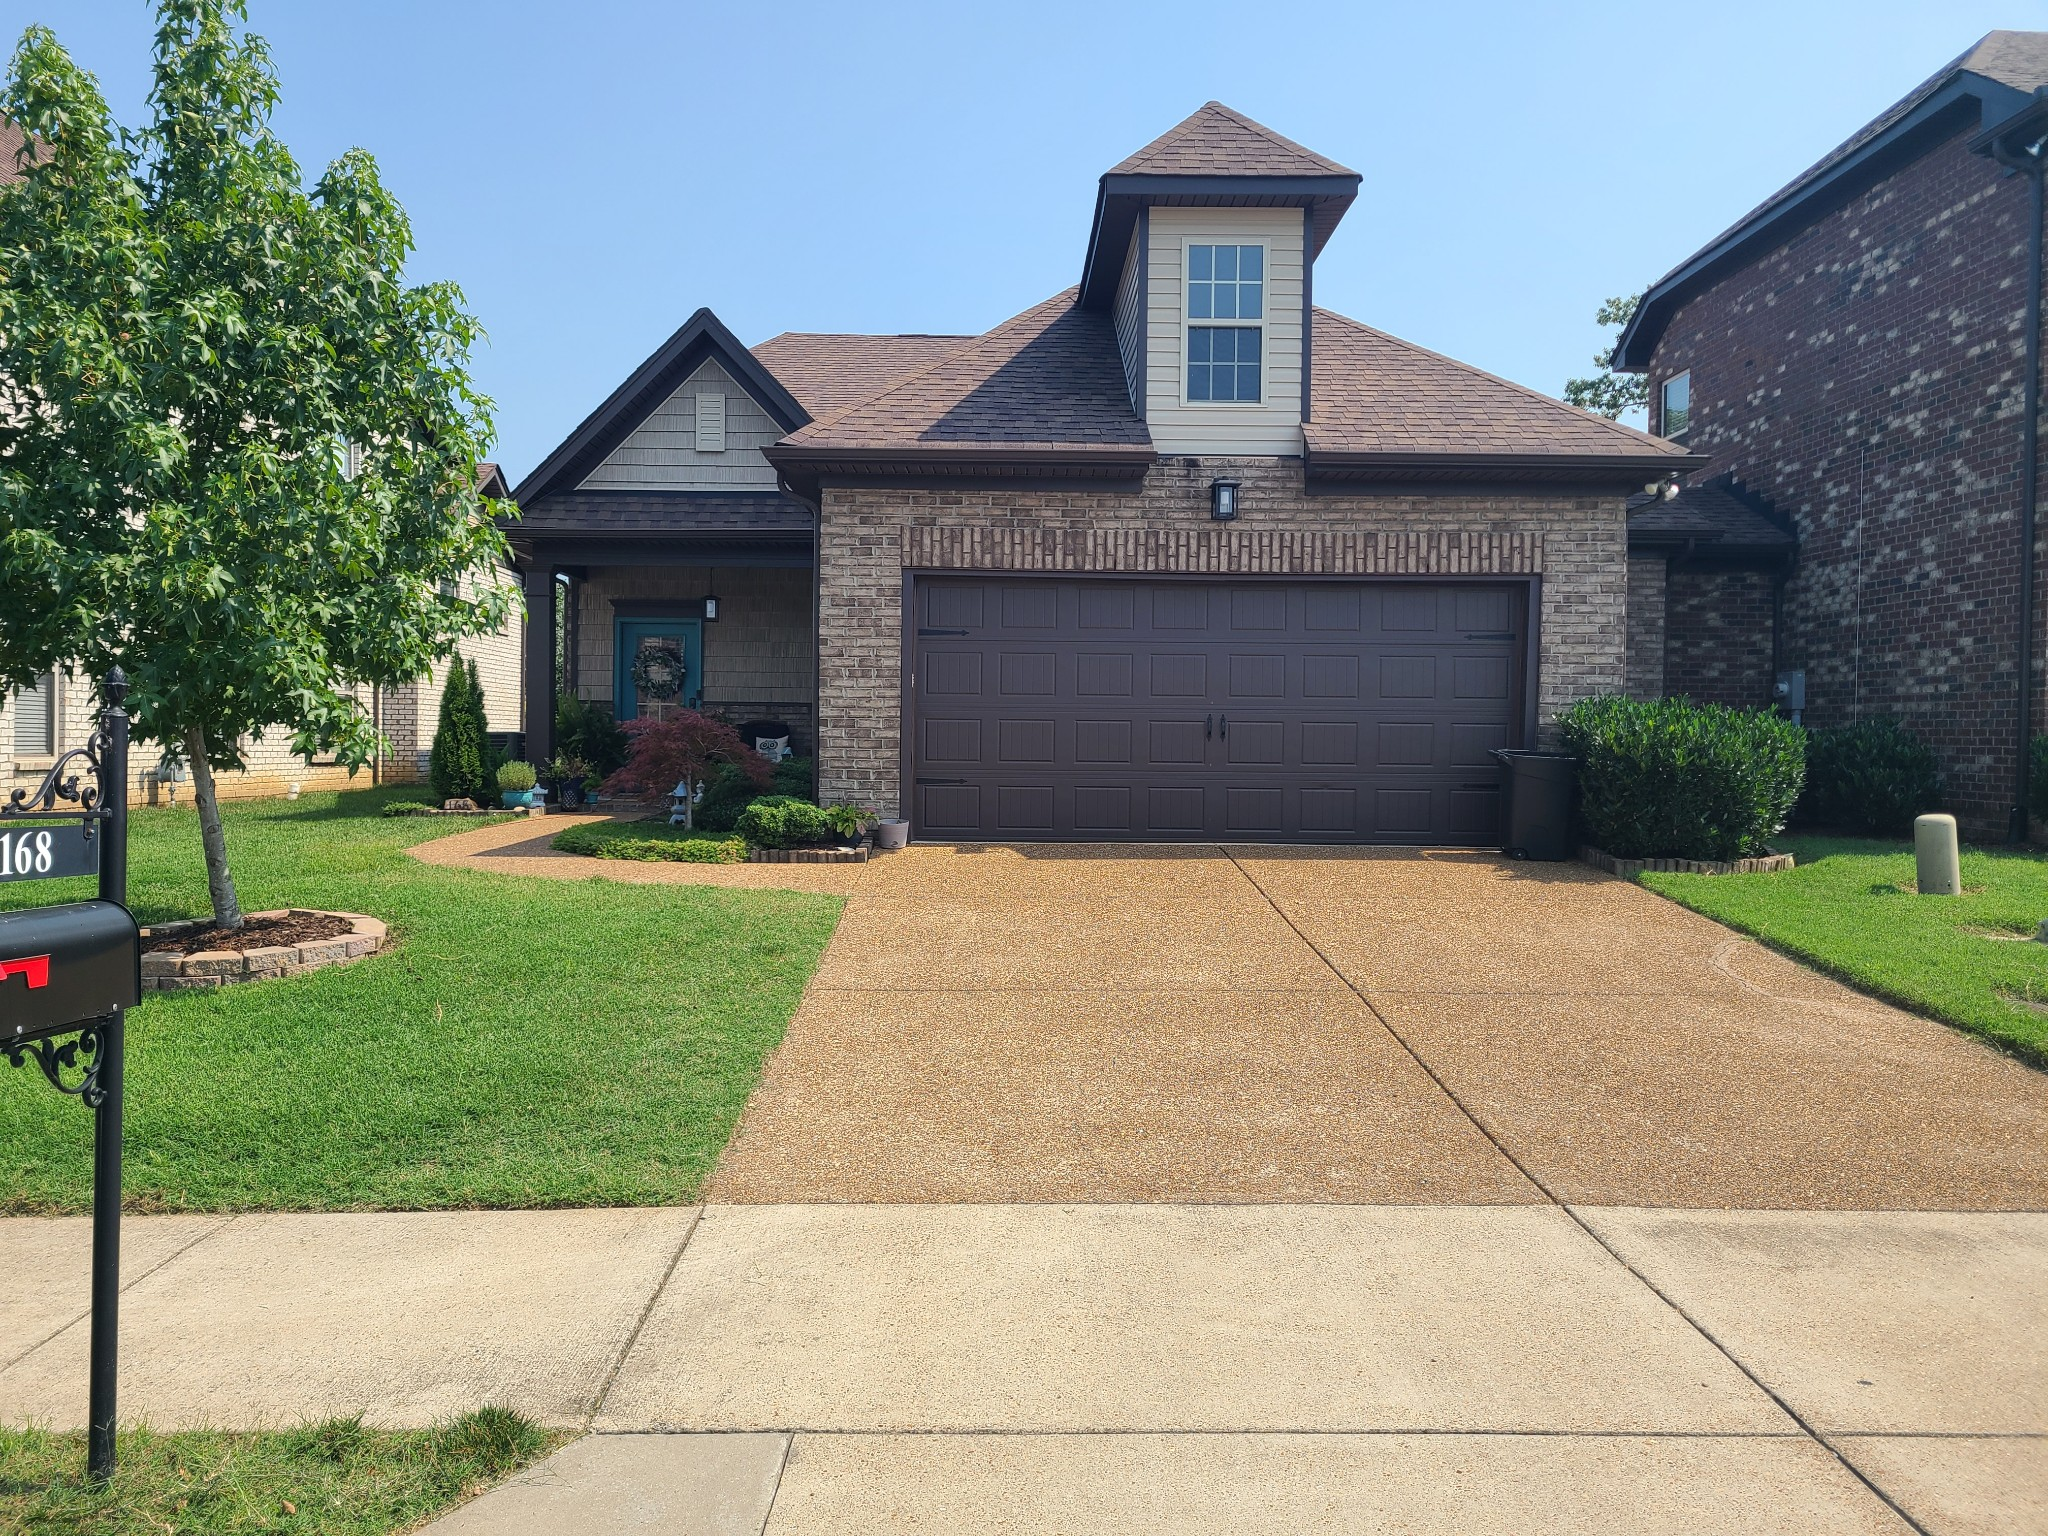 """Desired Gated Community...All Brick. Backs Up to Woods...2 pools...Pathway to Greenway...Close to Schools...Open Floor Plan...Fire Place...Large Pantry...4 Bedrooms...3 Baths...Large Walk in Mst Closet...1BR up could be used for In Home Office...Couch Up stairs can stay!  All Offers due Wednesday July 28th by 6pm.  (see full offer details on the """"Offer Info"""" attachment in the Media)"""